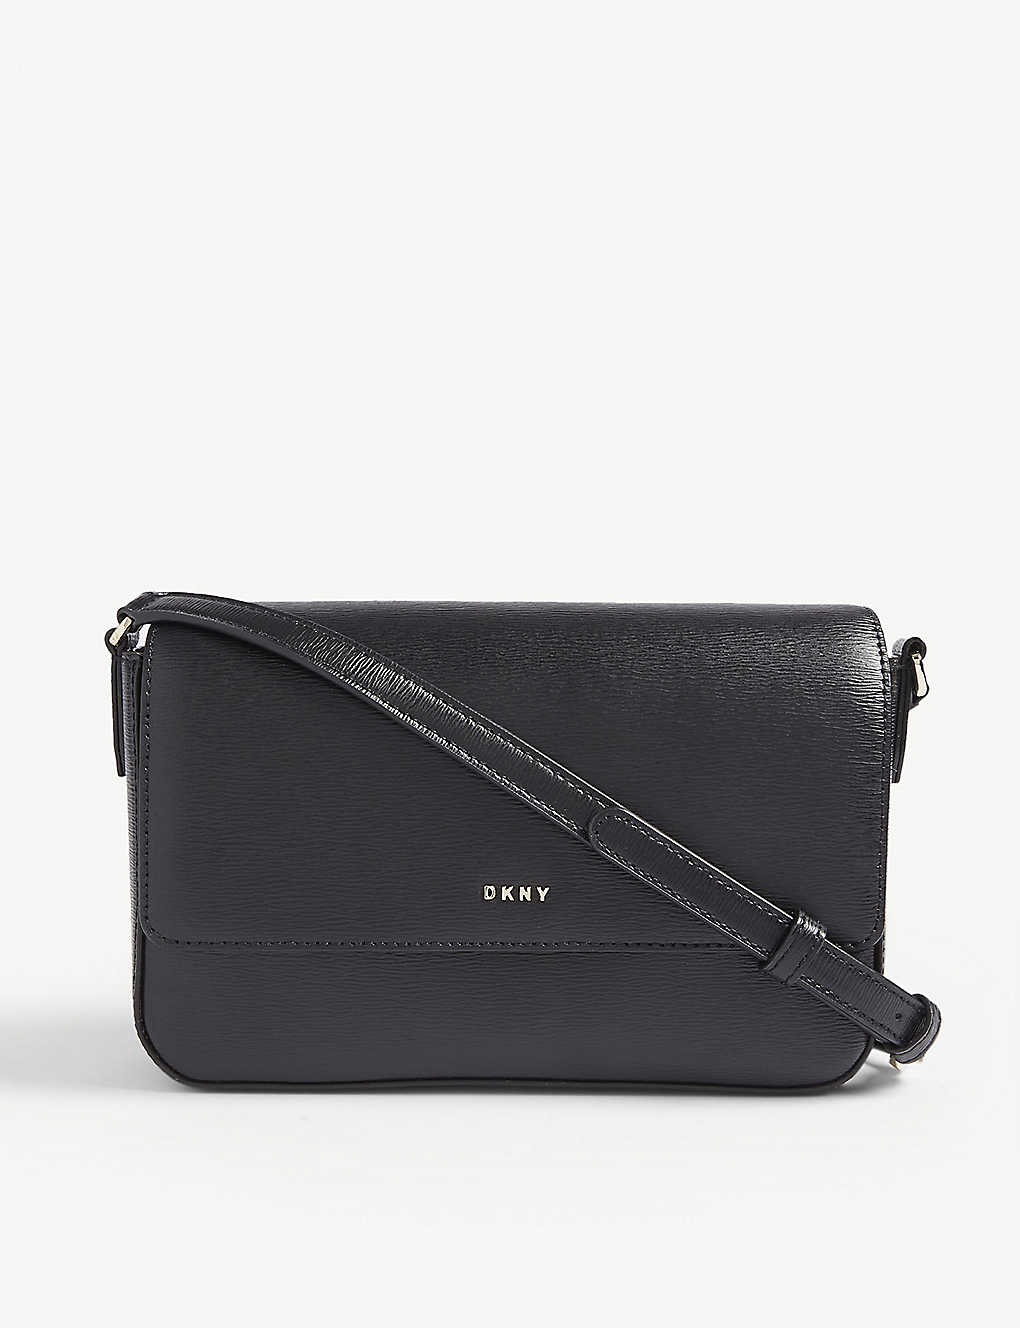 DKNY: Bryant leather cross-body bag